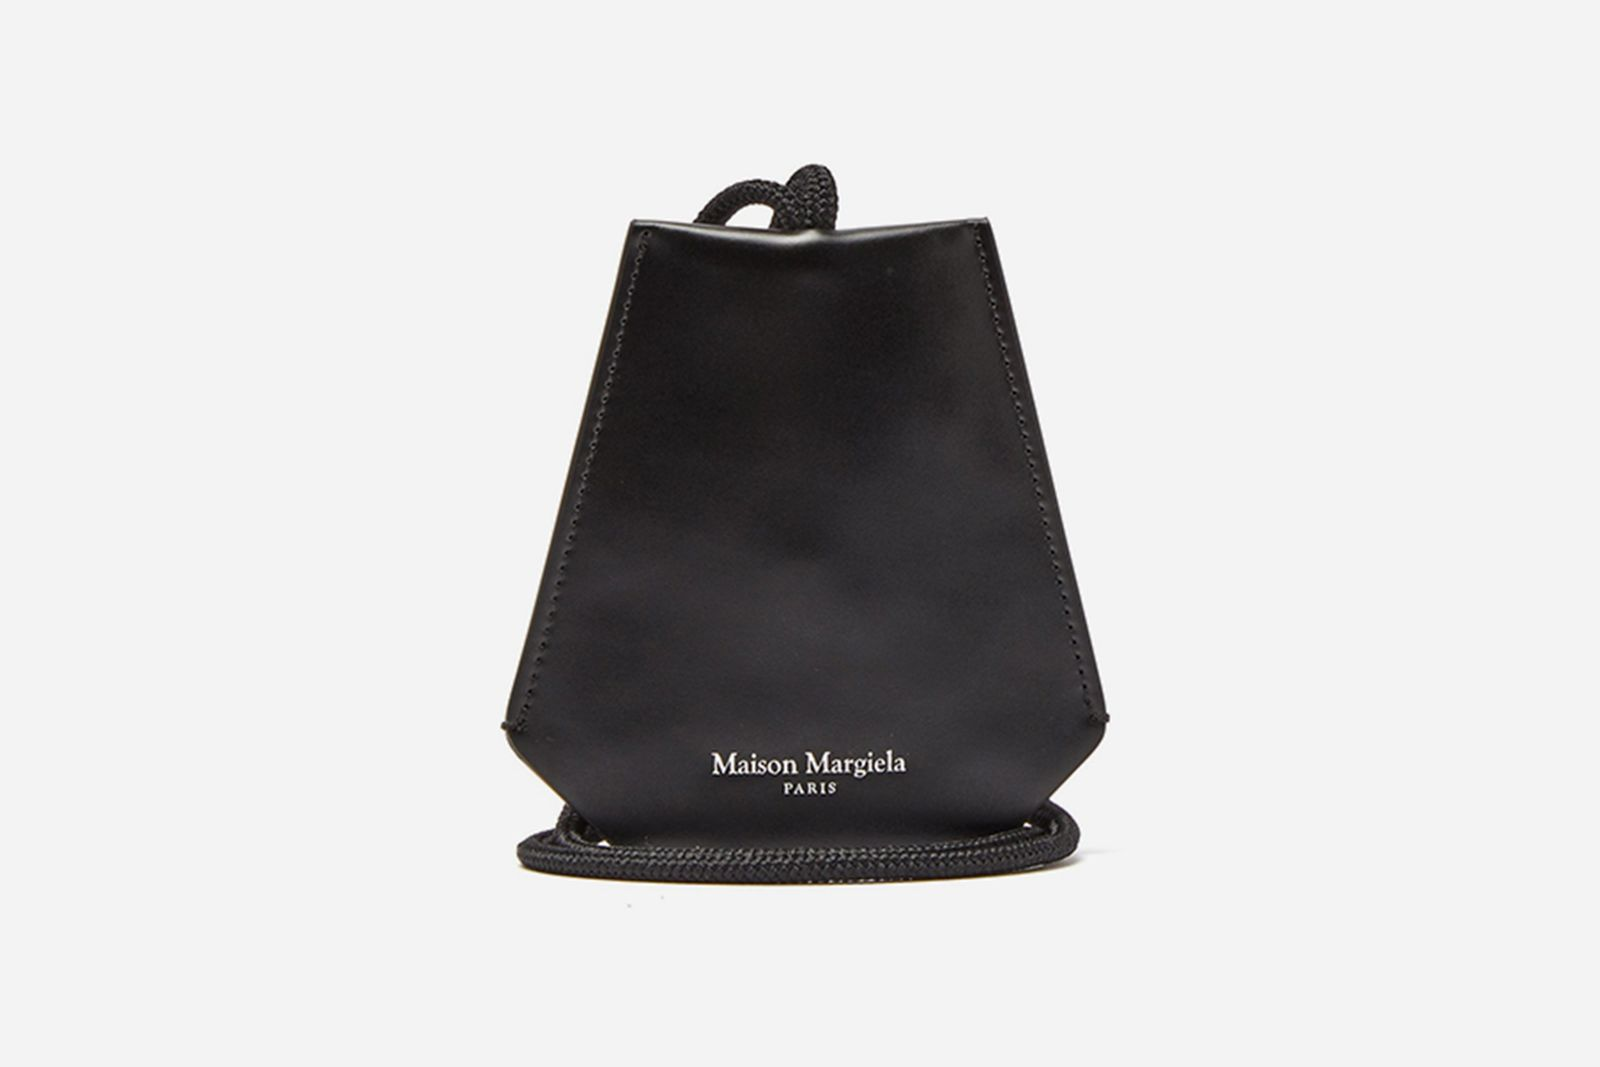 Maison Margiela Leather Key Ring